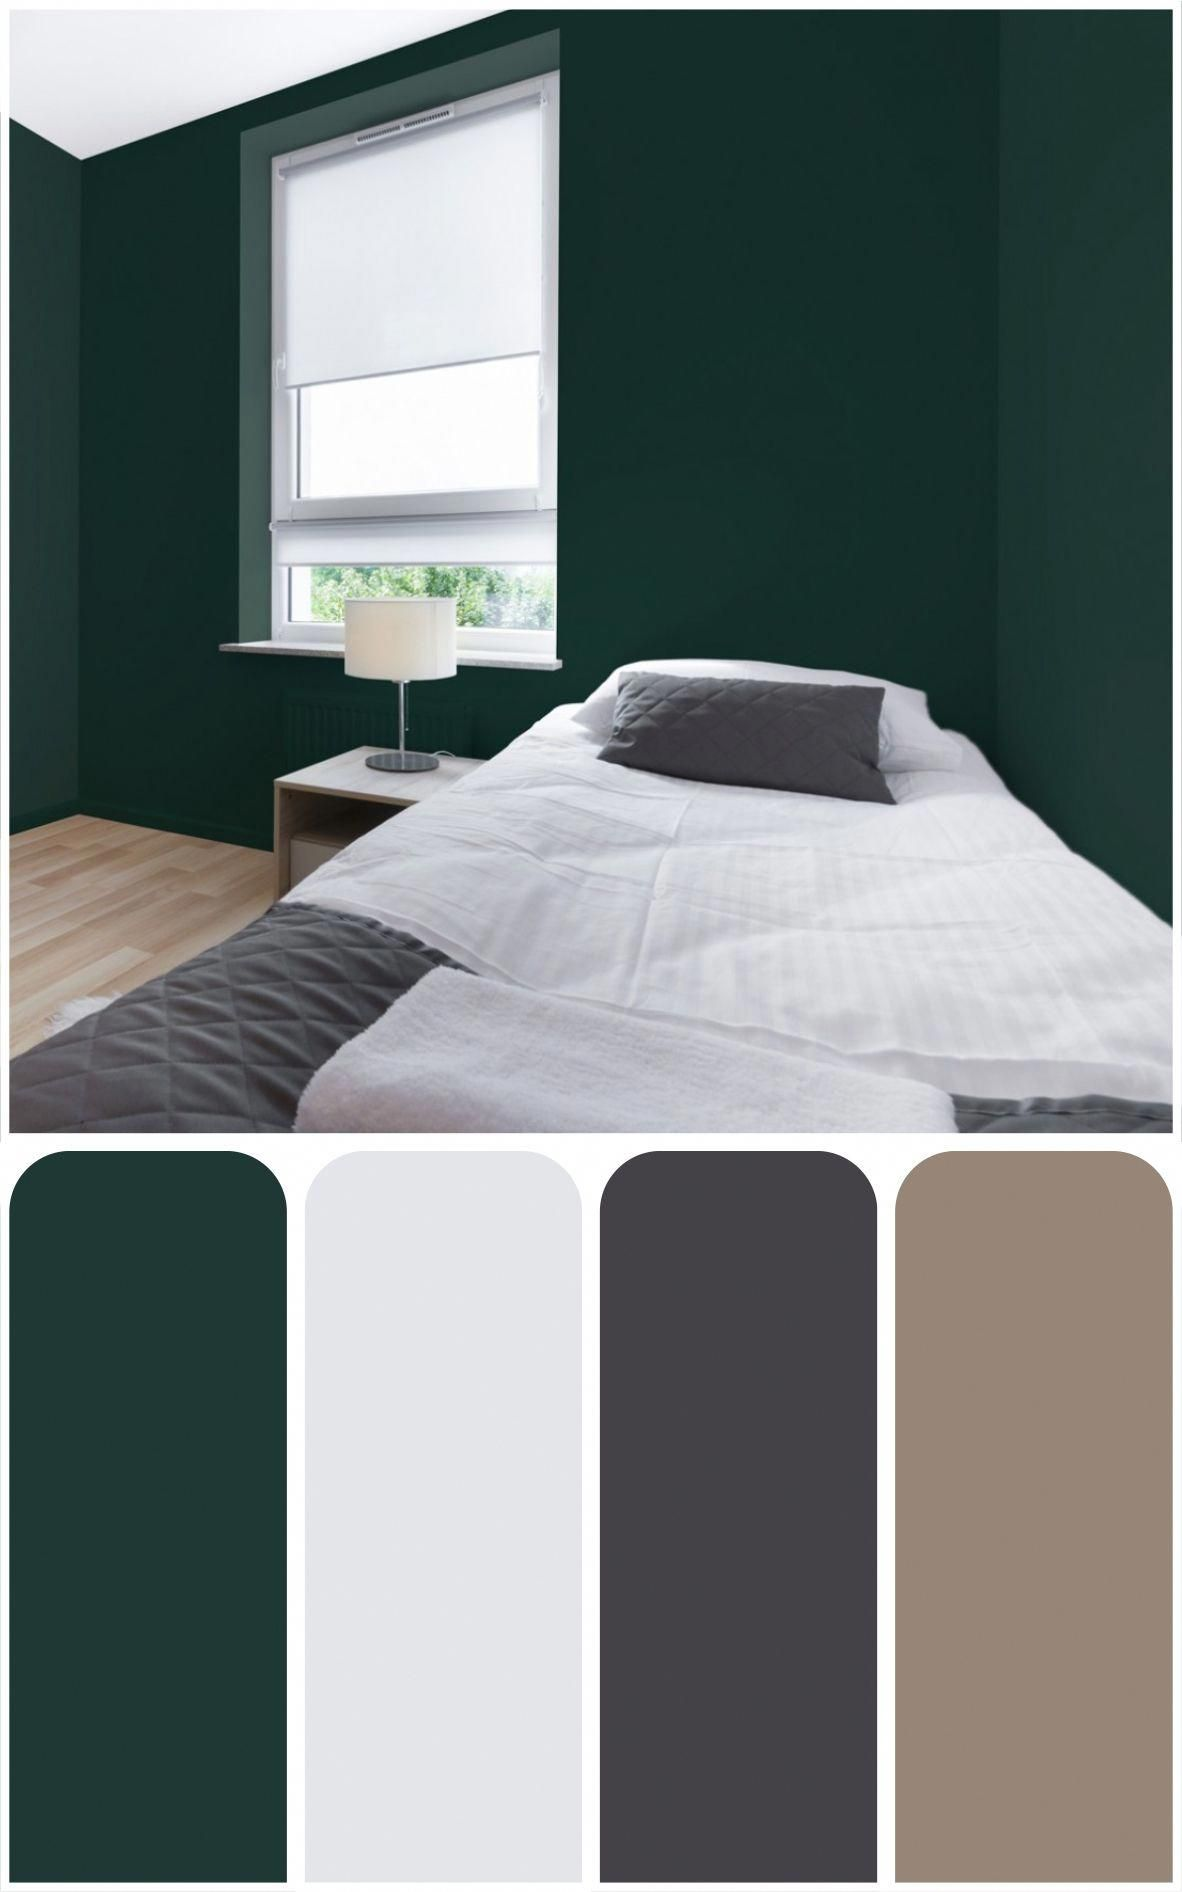 Bedroom Colour Ideas With Dark Green Wall Bedroomcolors